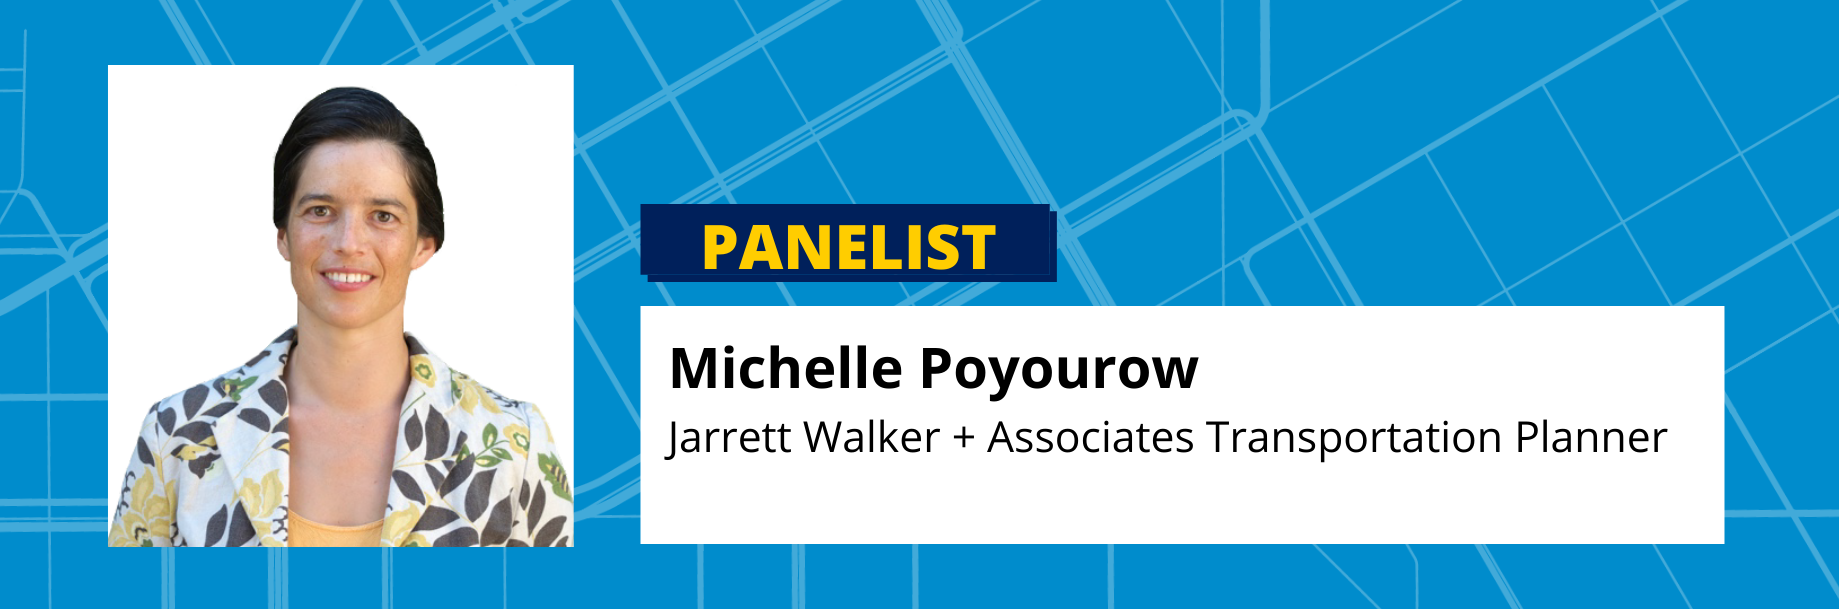 Michelle Poyourow Jarrett Walker + Associates Transportation Planner